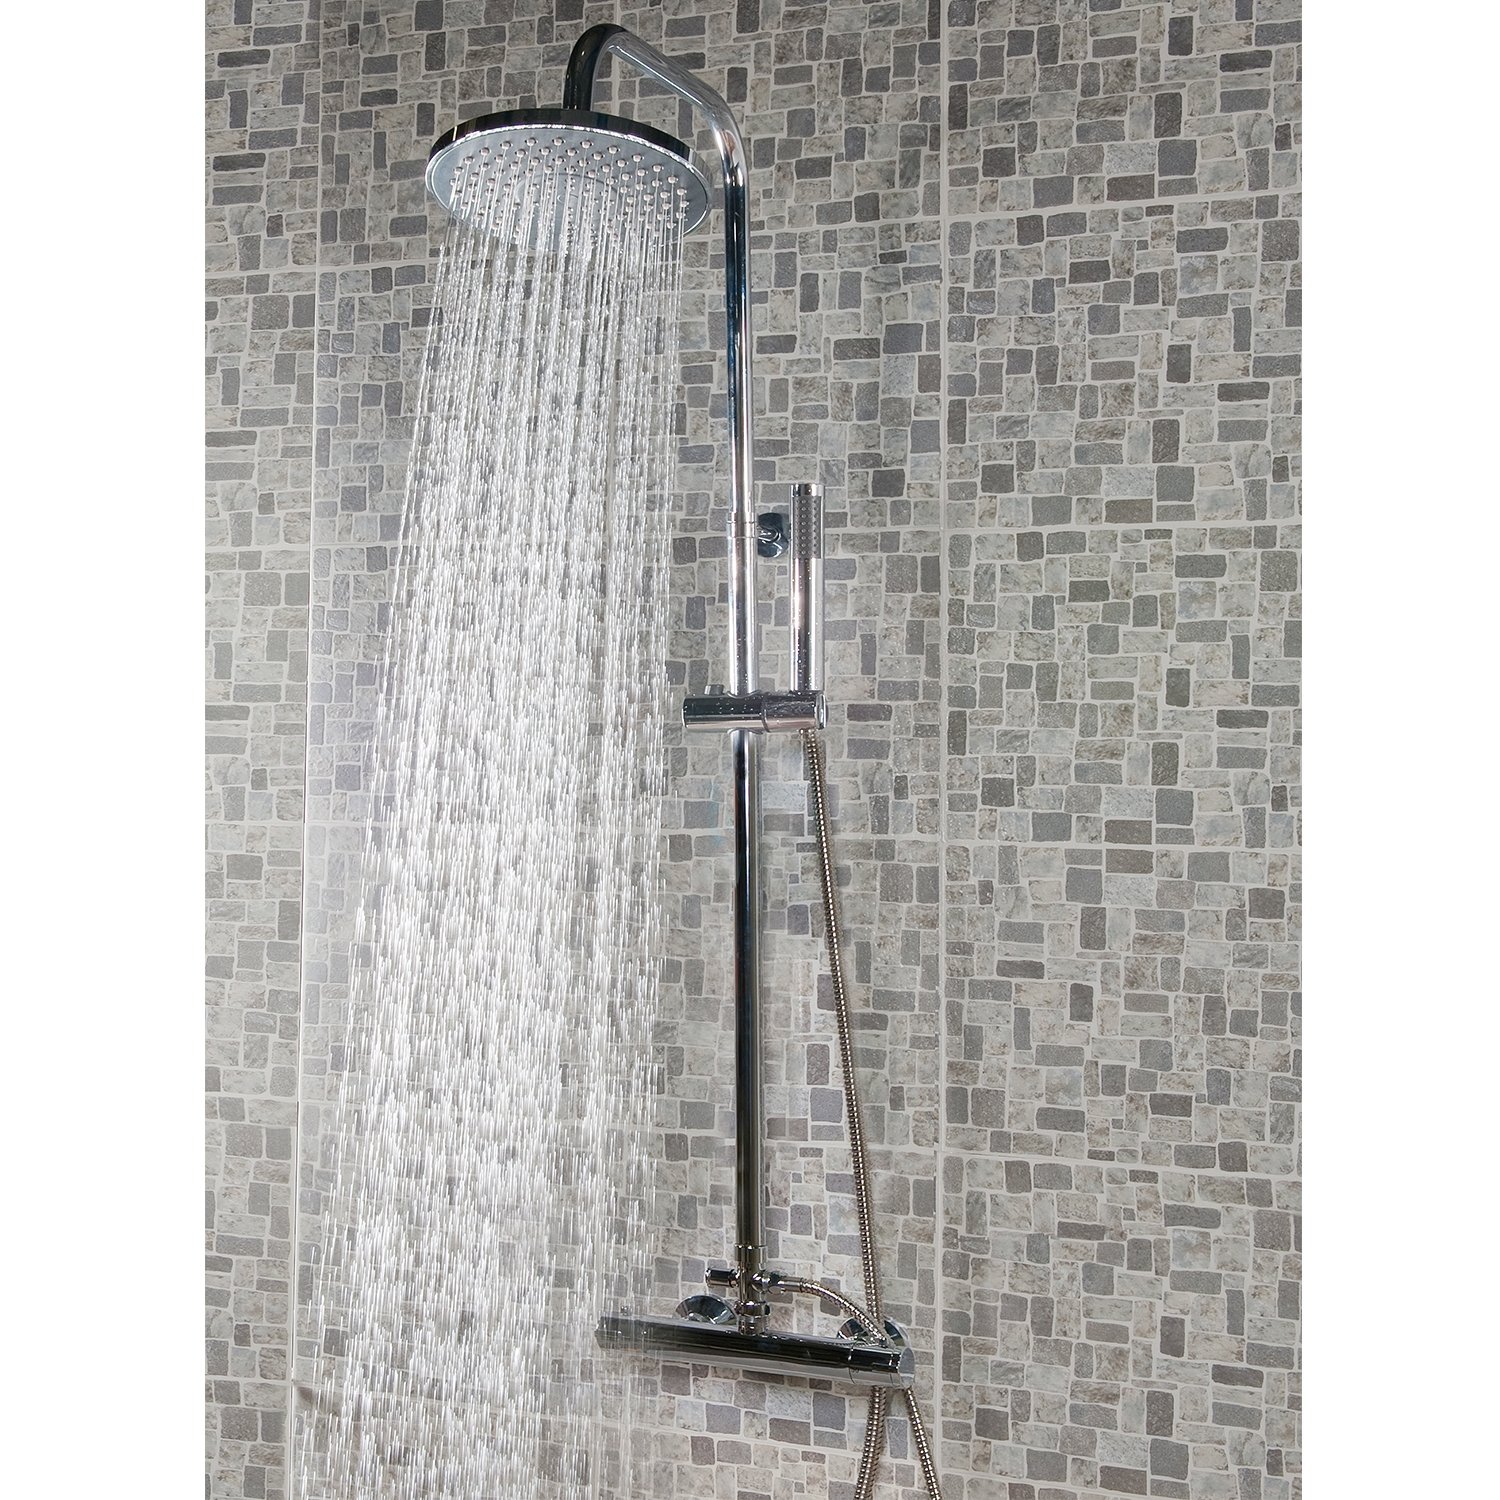 Premier Round Bar Mixer Shower with Shower Kit + Fixed Head-0